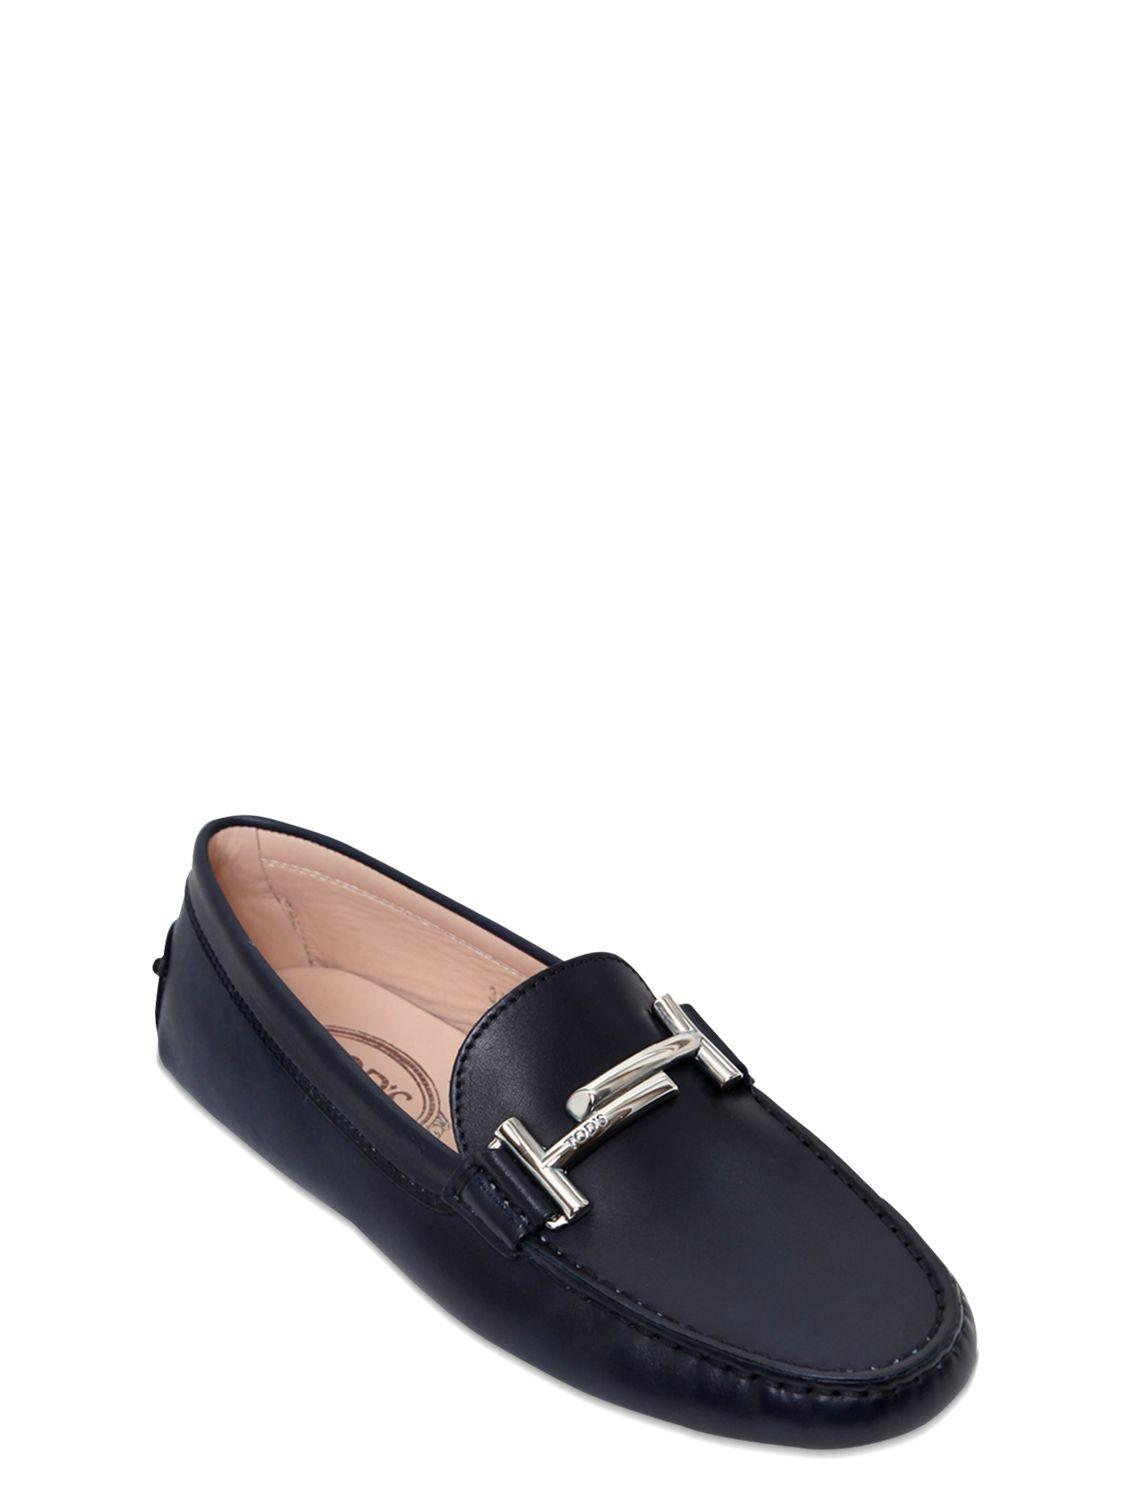 Tod'sDouble T Gommino loafers